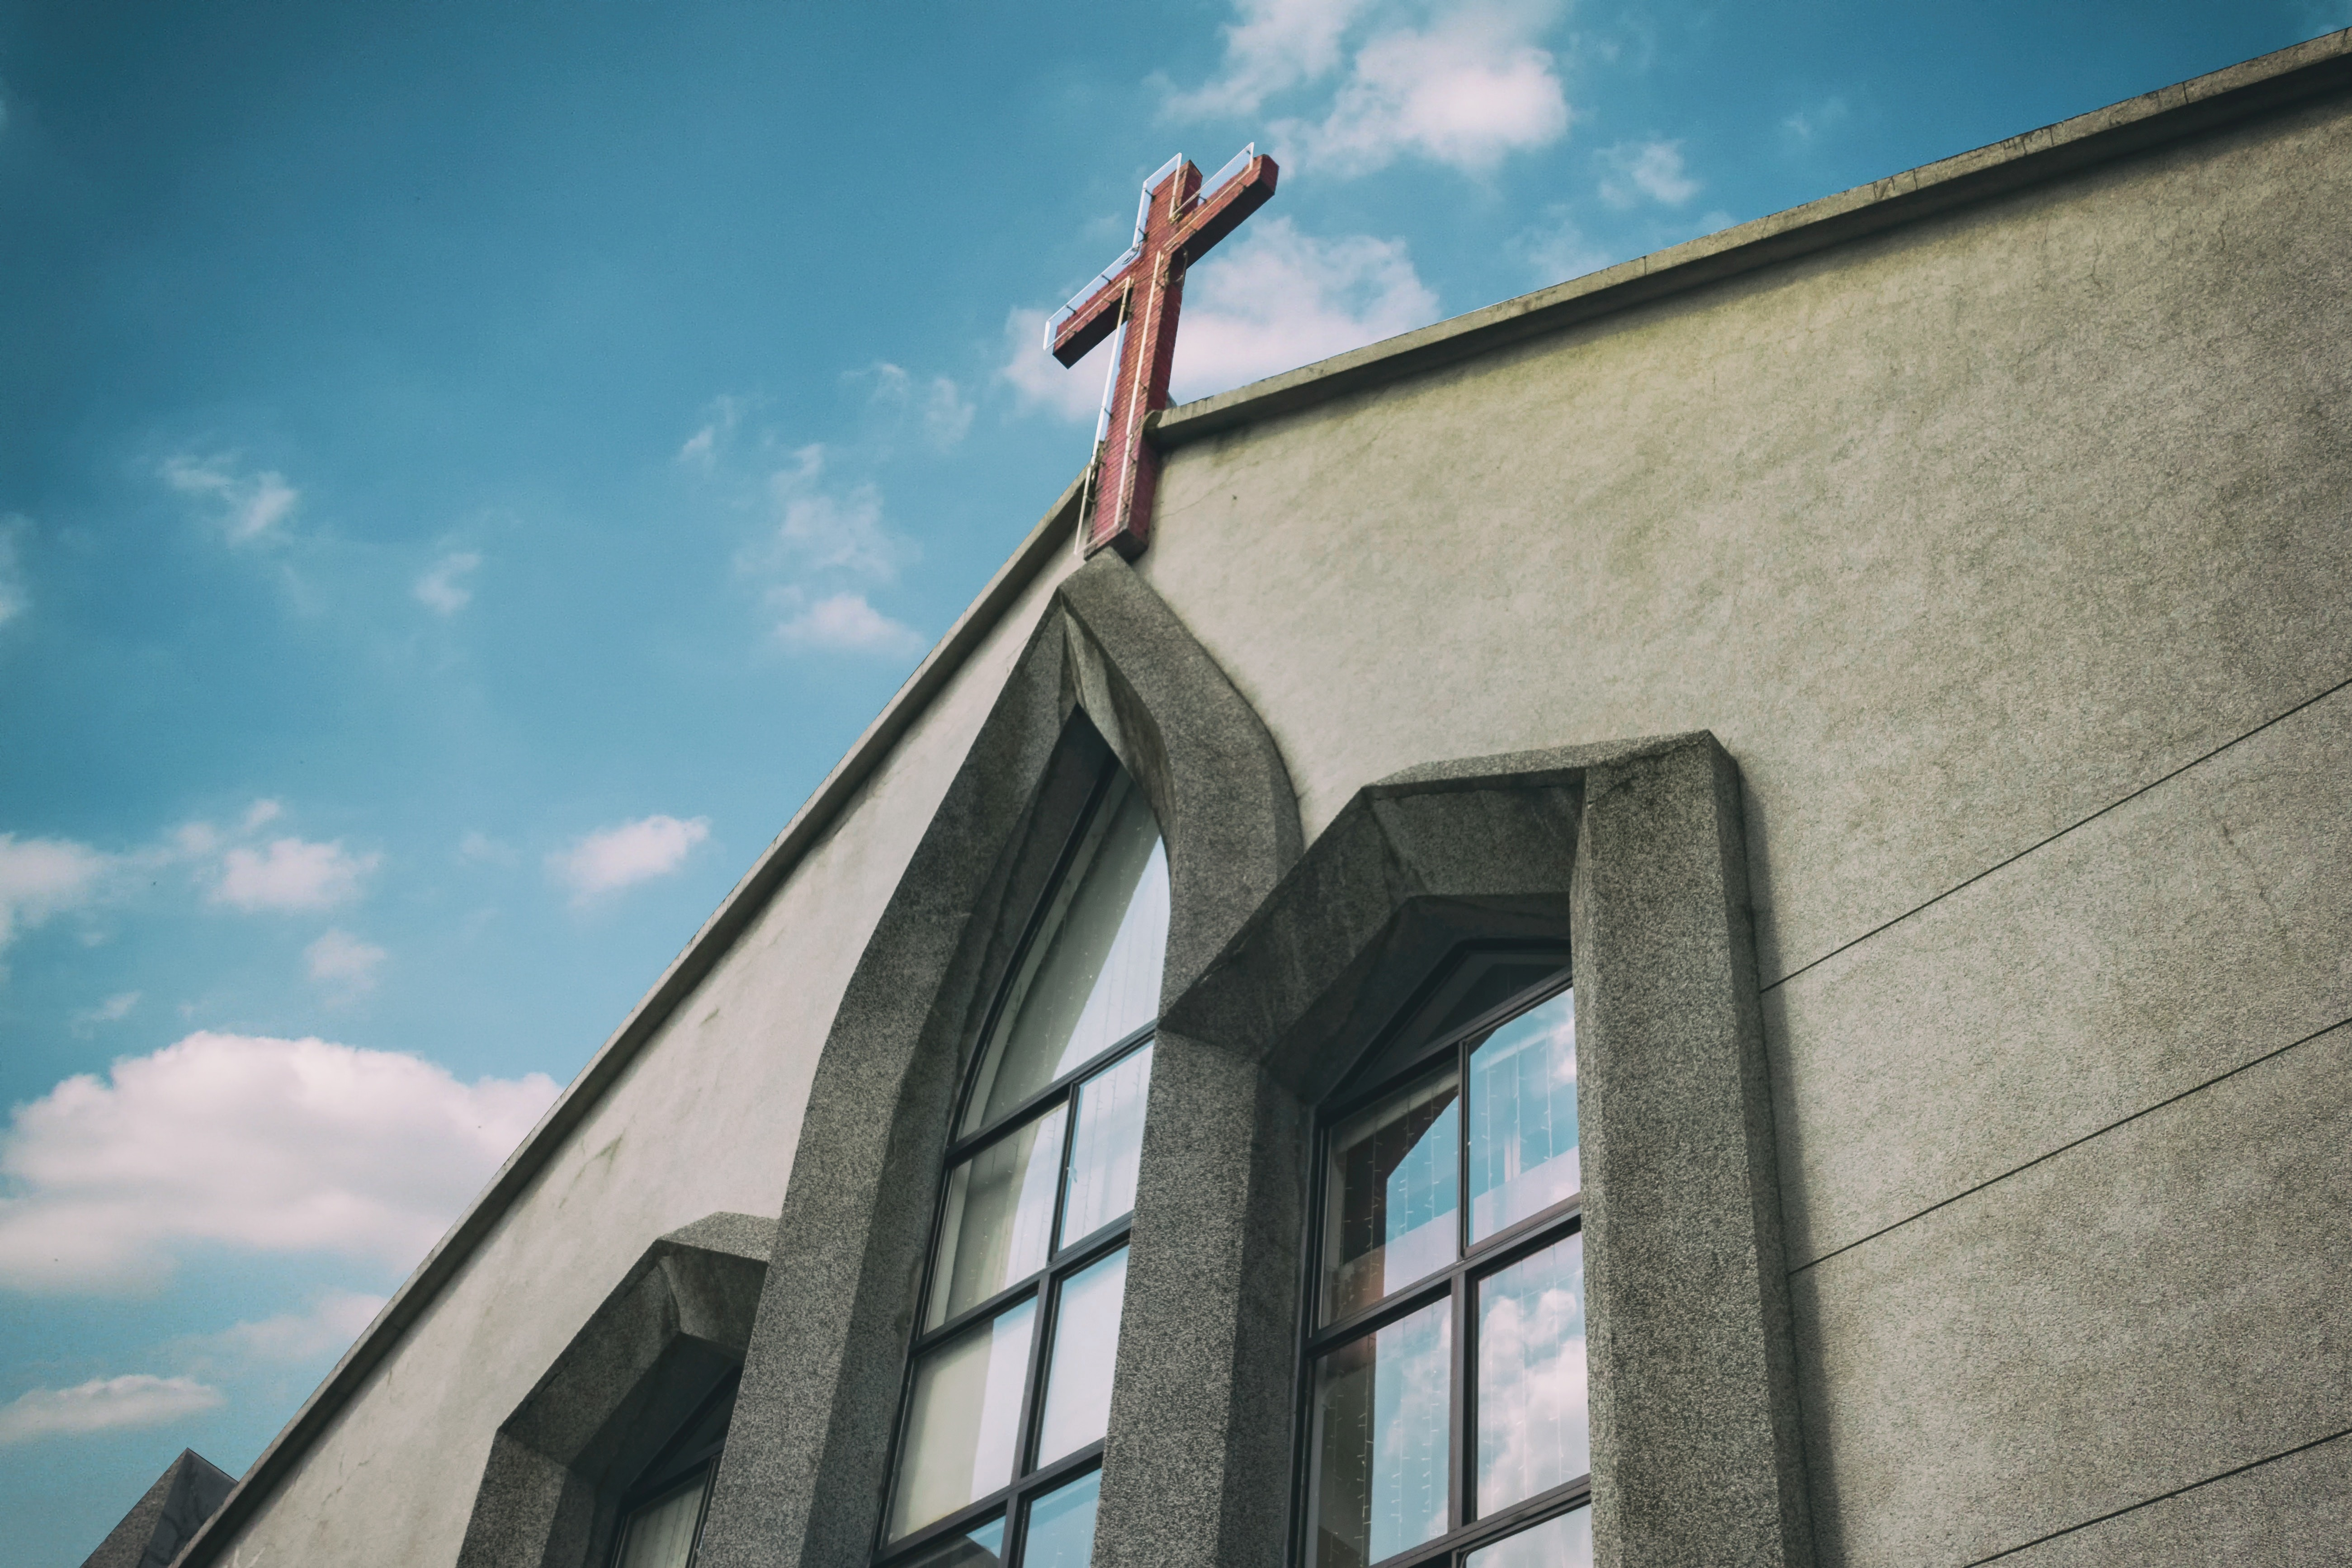 New tax on churches, nonprofits tramples religious, speech freedoms